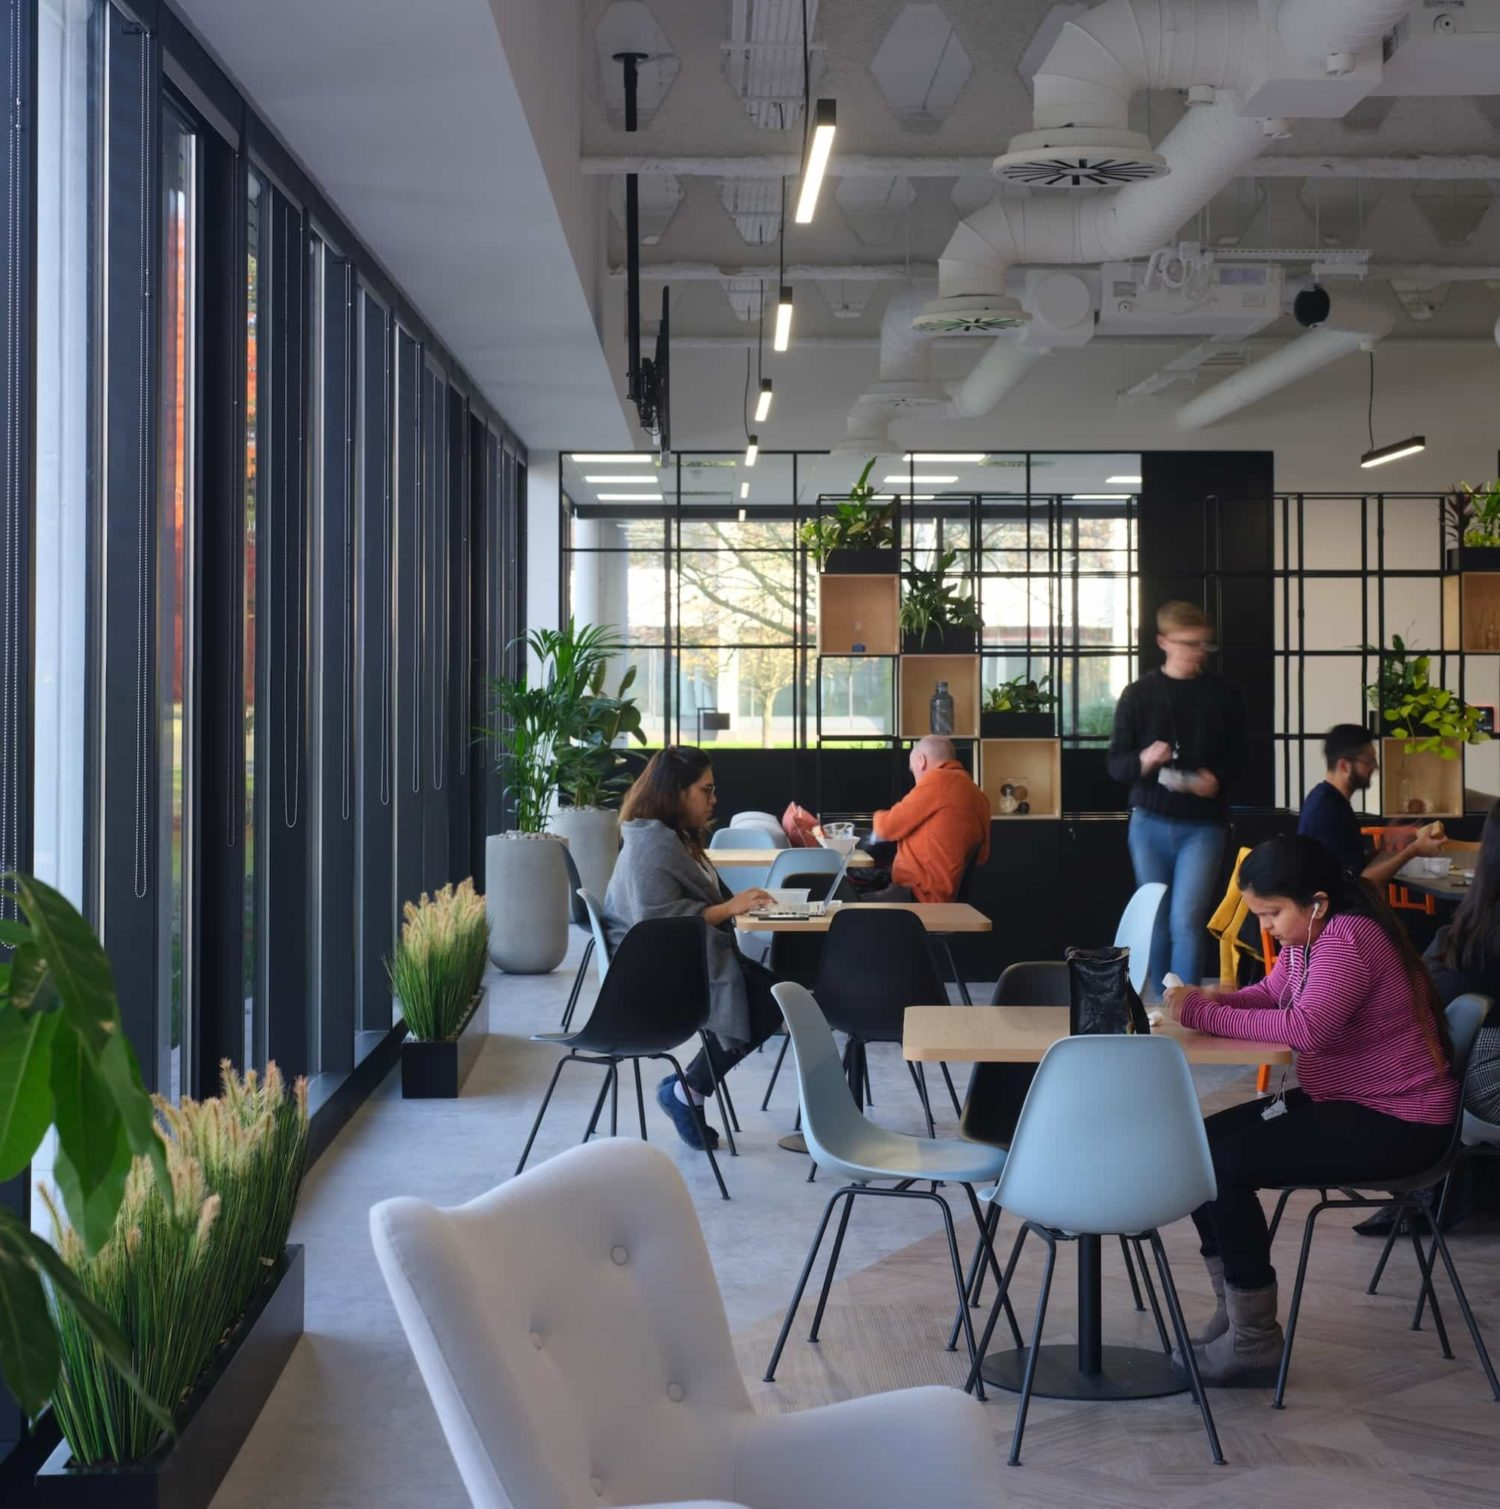 Busy breakout area with biophilia